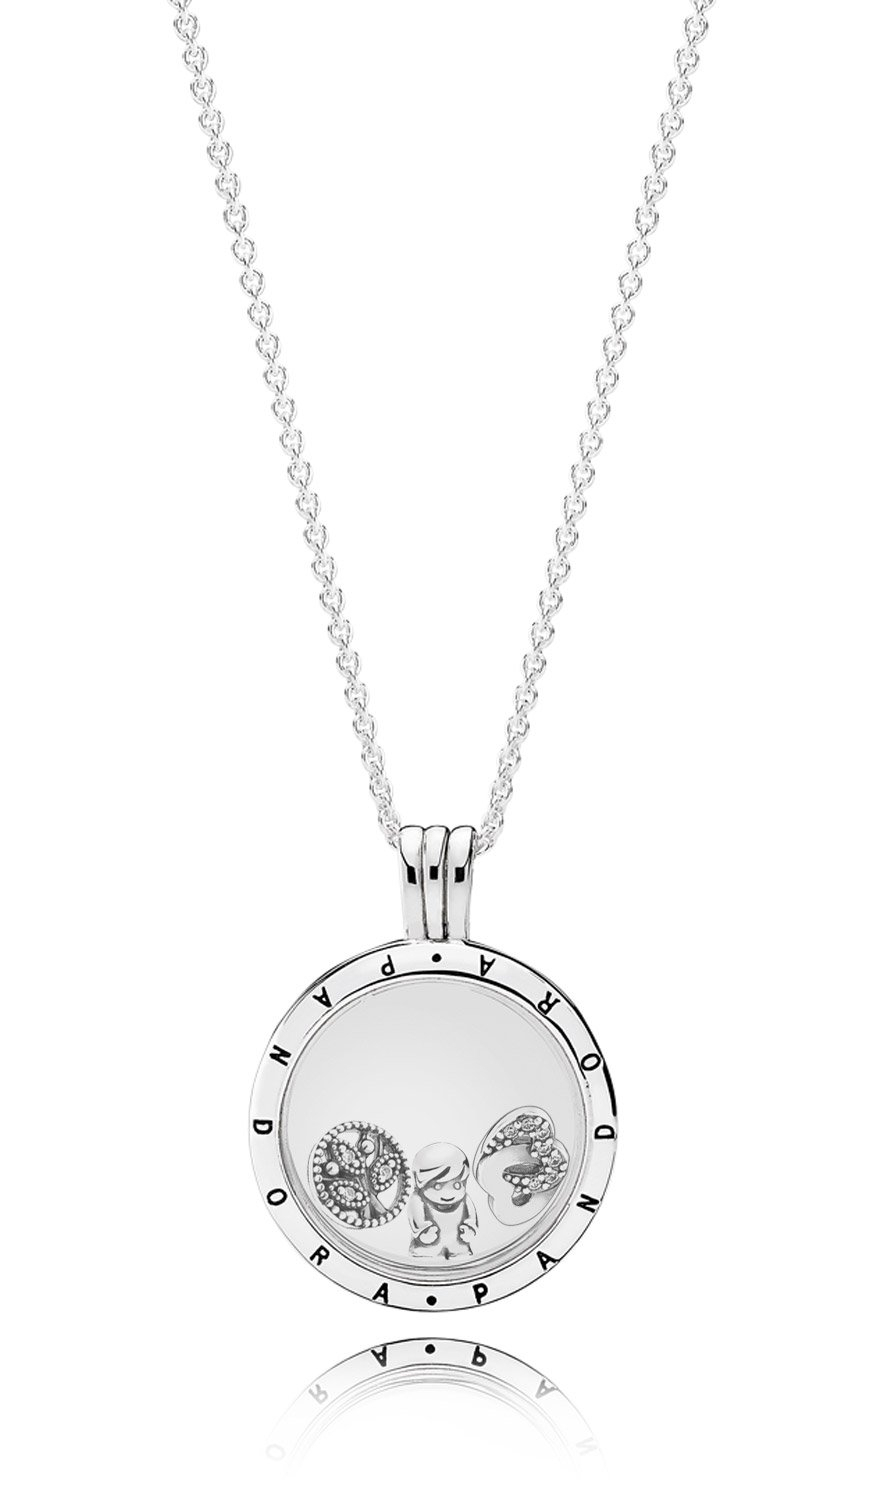 Pandora Medaillons And Elements At Low Prices • Uhrcenter Shop With 2019 Letter Z Alphabet Locket Element Necklaces (View 21 of 25)